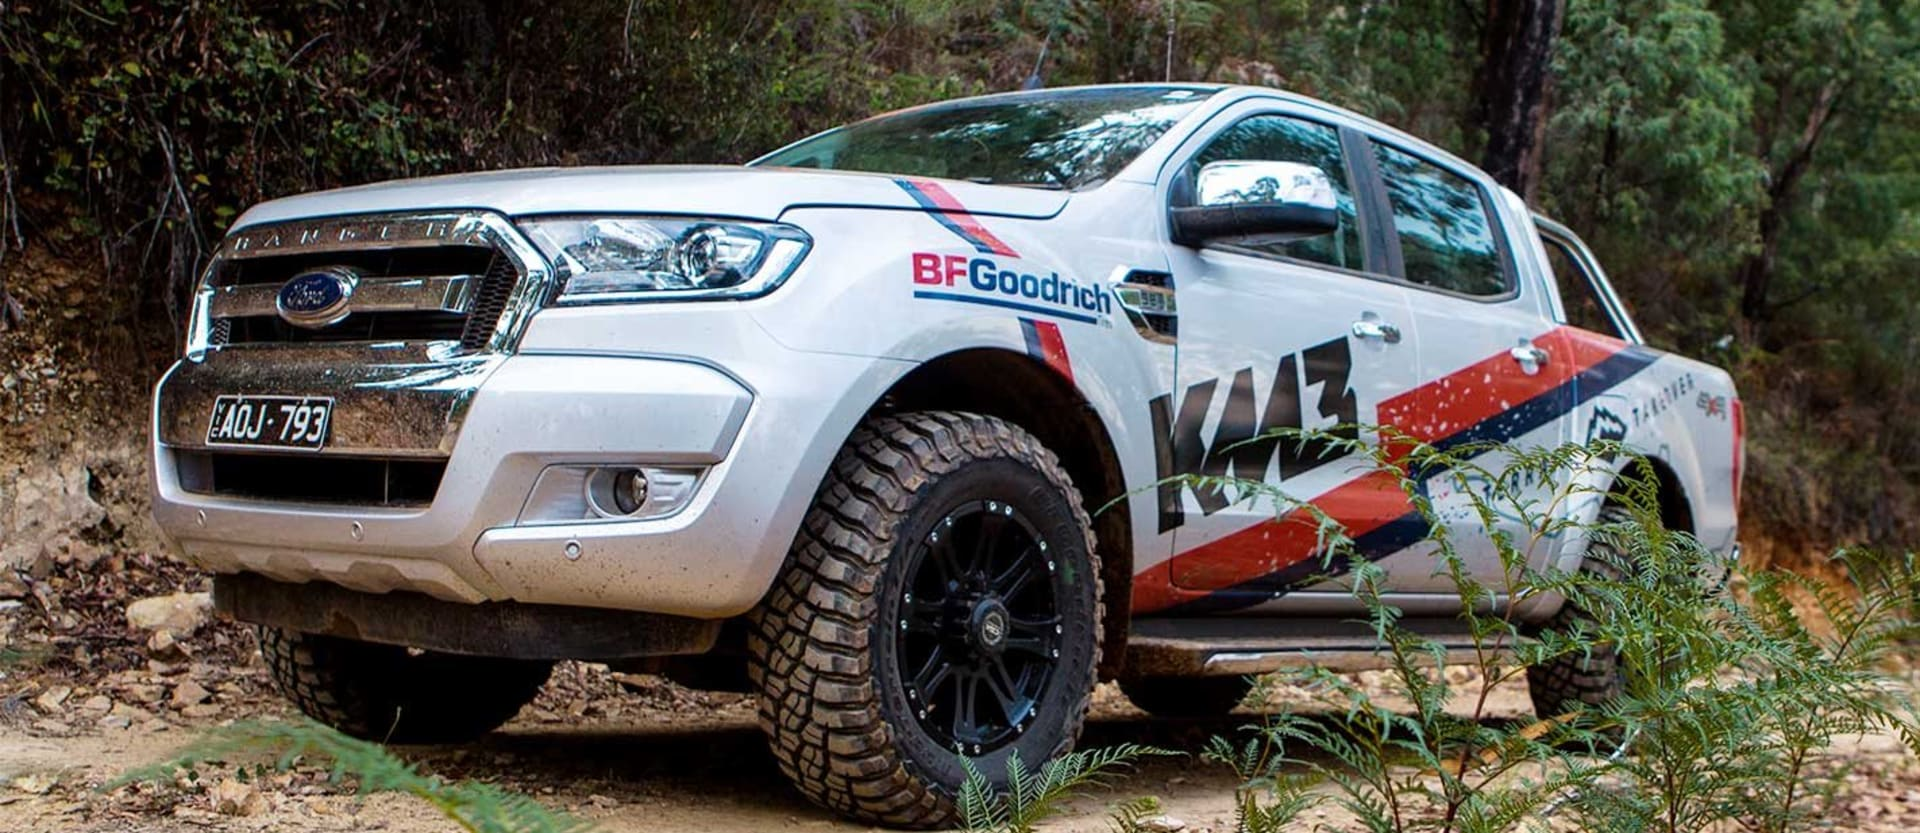 BFGoodrich KM3 Mud Terrain launches in the High Country news